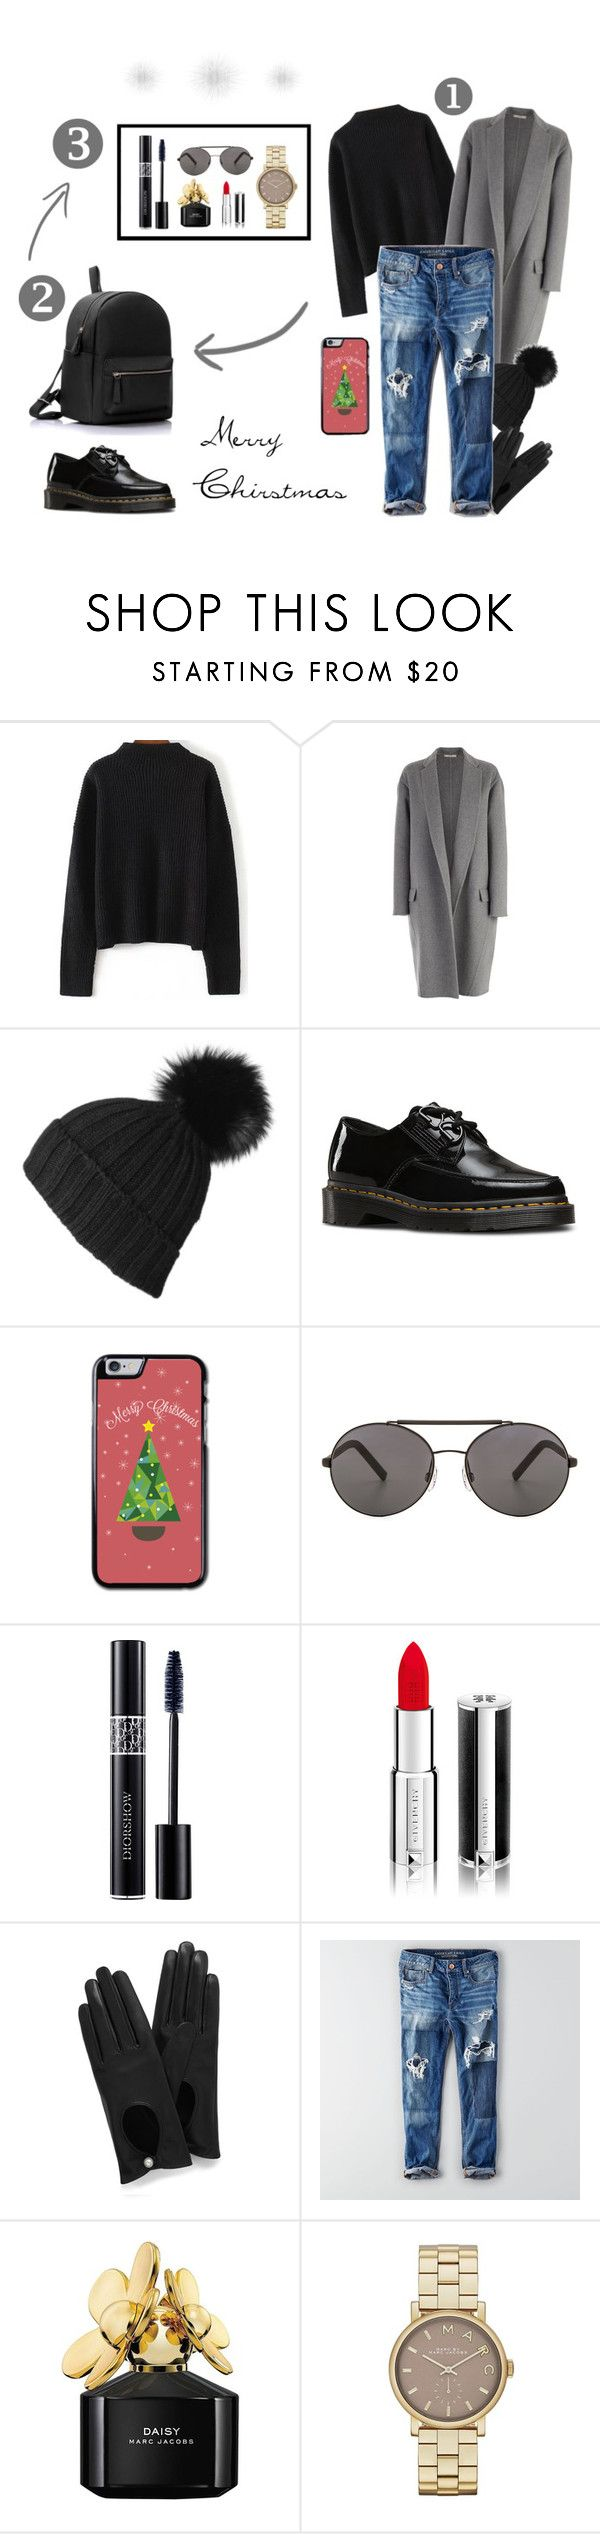 """""""Merry Christmas"""" by smaranda-leorda on Polyvore featuring CÉLINE, Black, Dr. Martens, Seafolly, Christian Dior, Givenchy, Mulberry, American Eagle Outfitters and Marc Jacobs"""